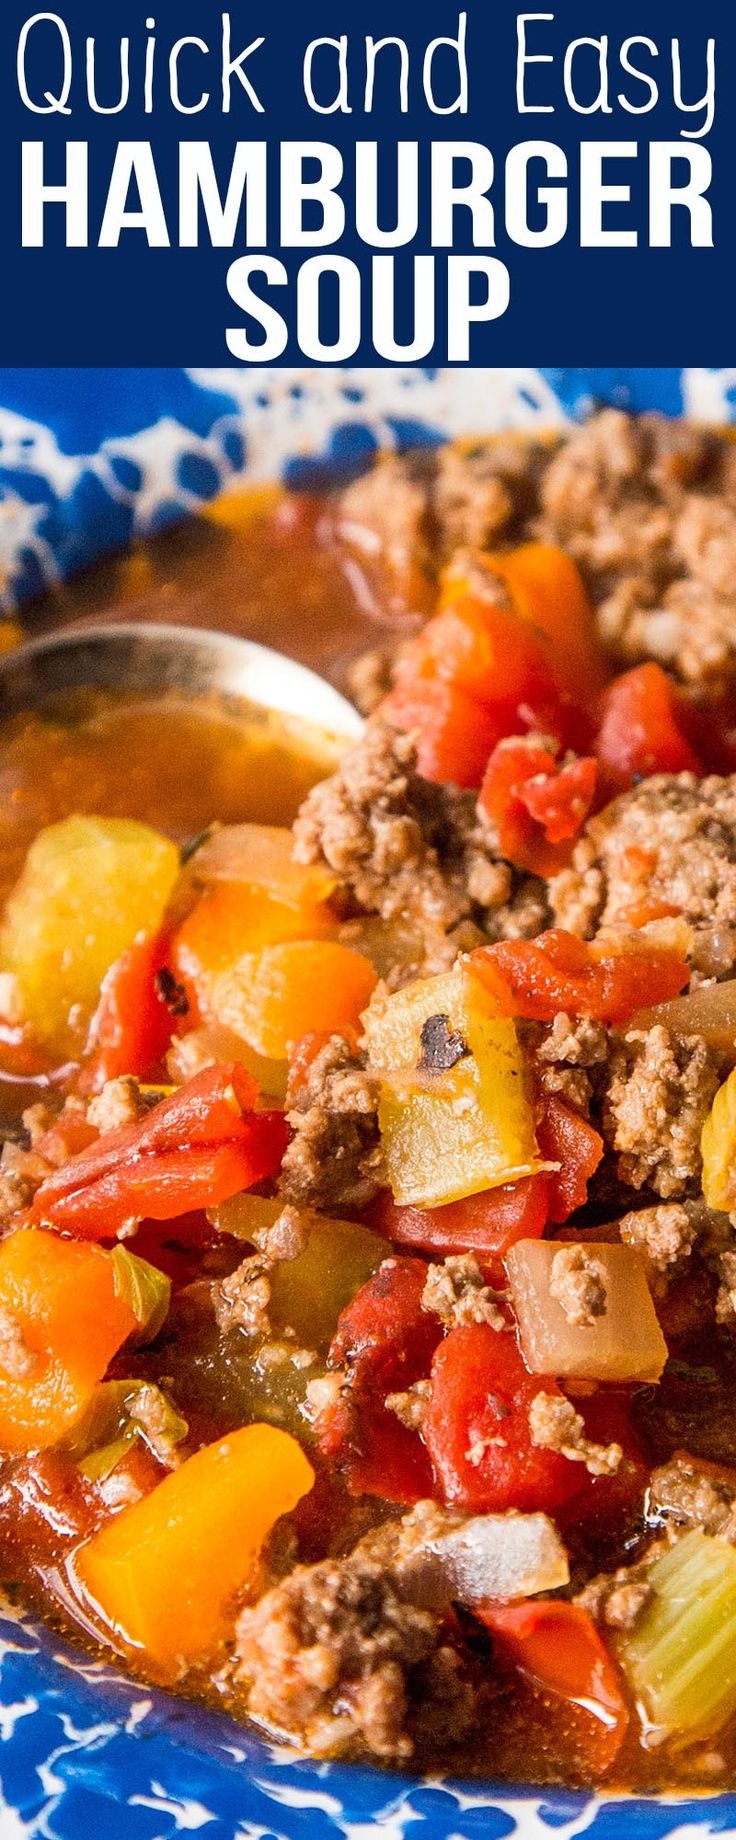 Hamburger Soup -- so Quick and Easy. Great last-minute weeknight meal. Ready in 30 minutes.